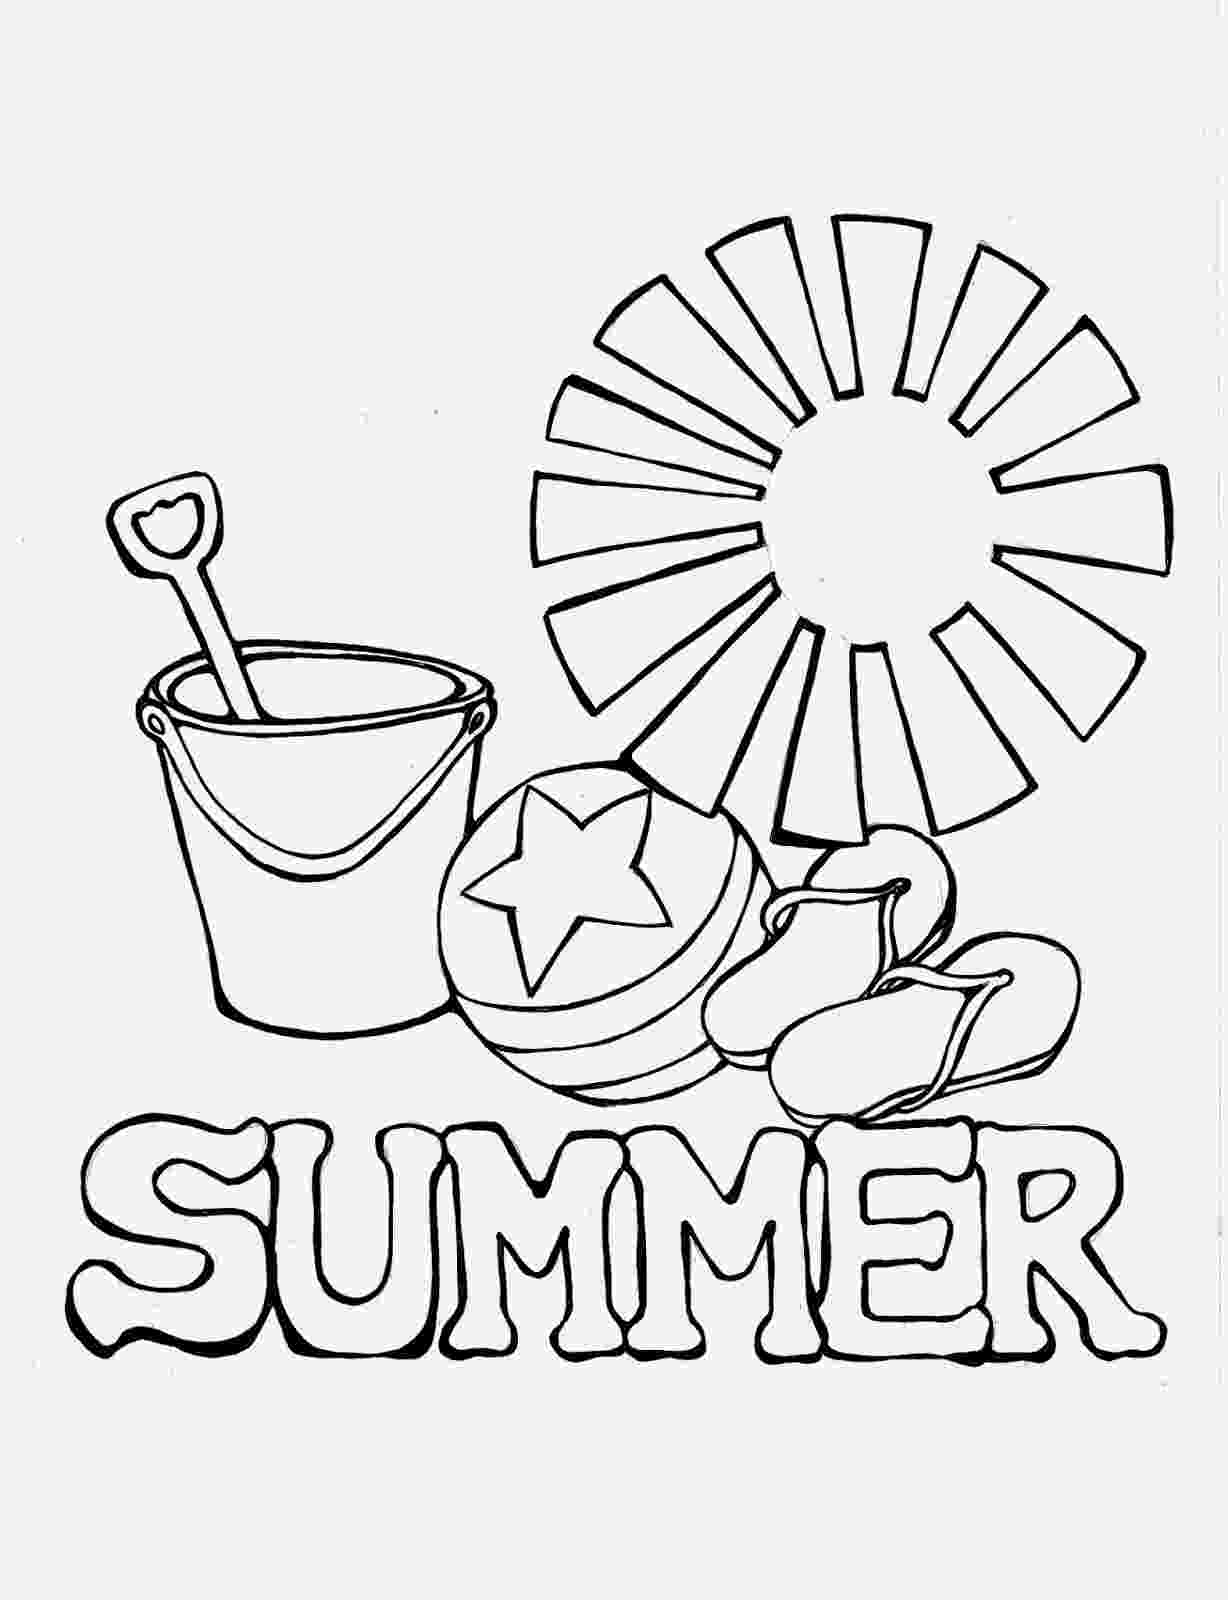 printable coloring sheets summer summer seasons janice39s daycare summer sheets printable coloring